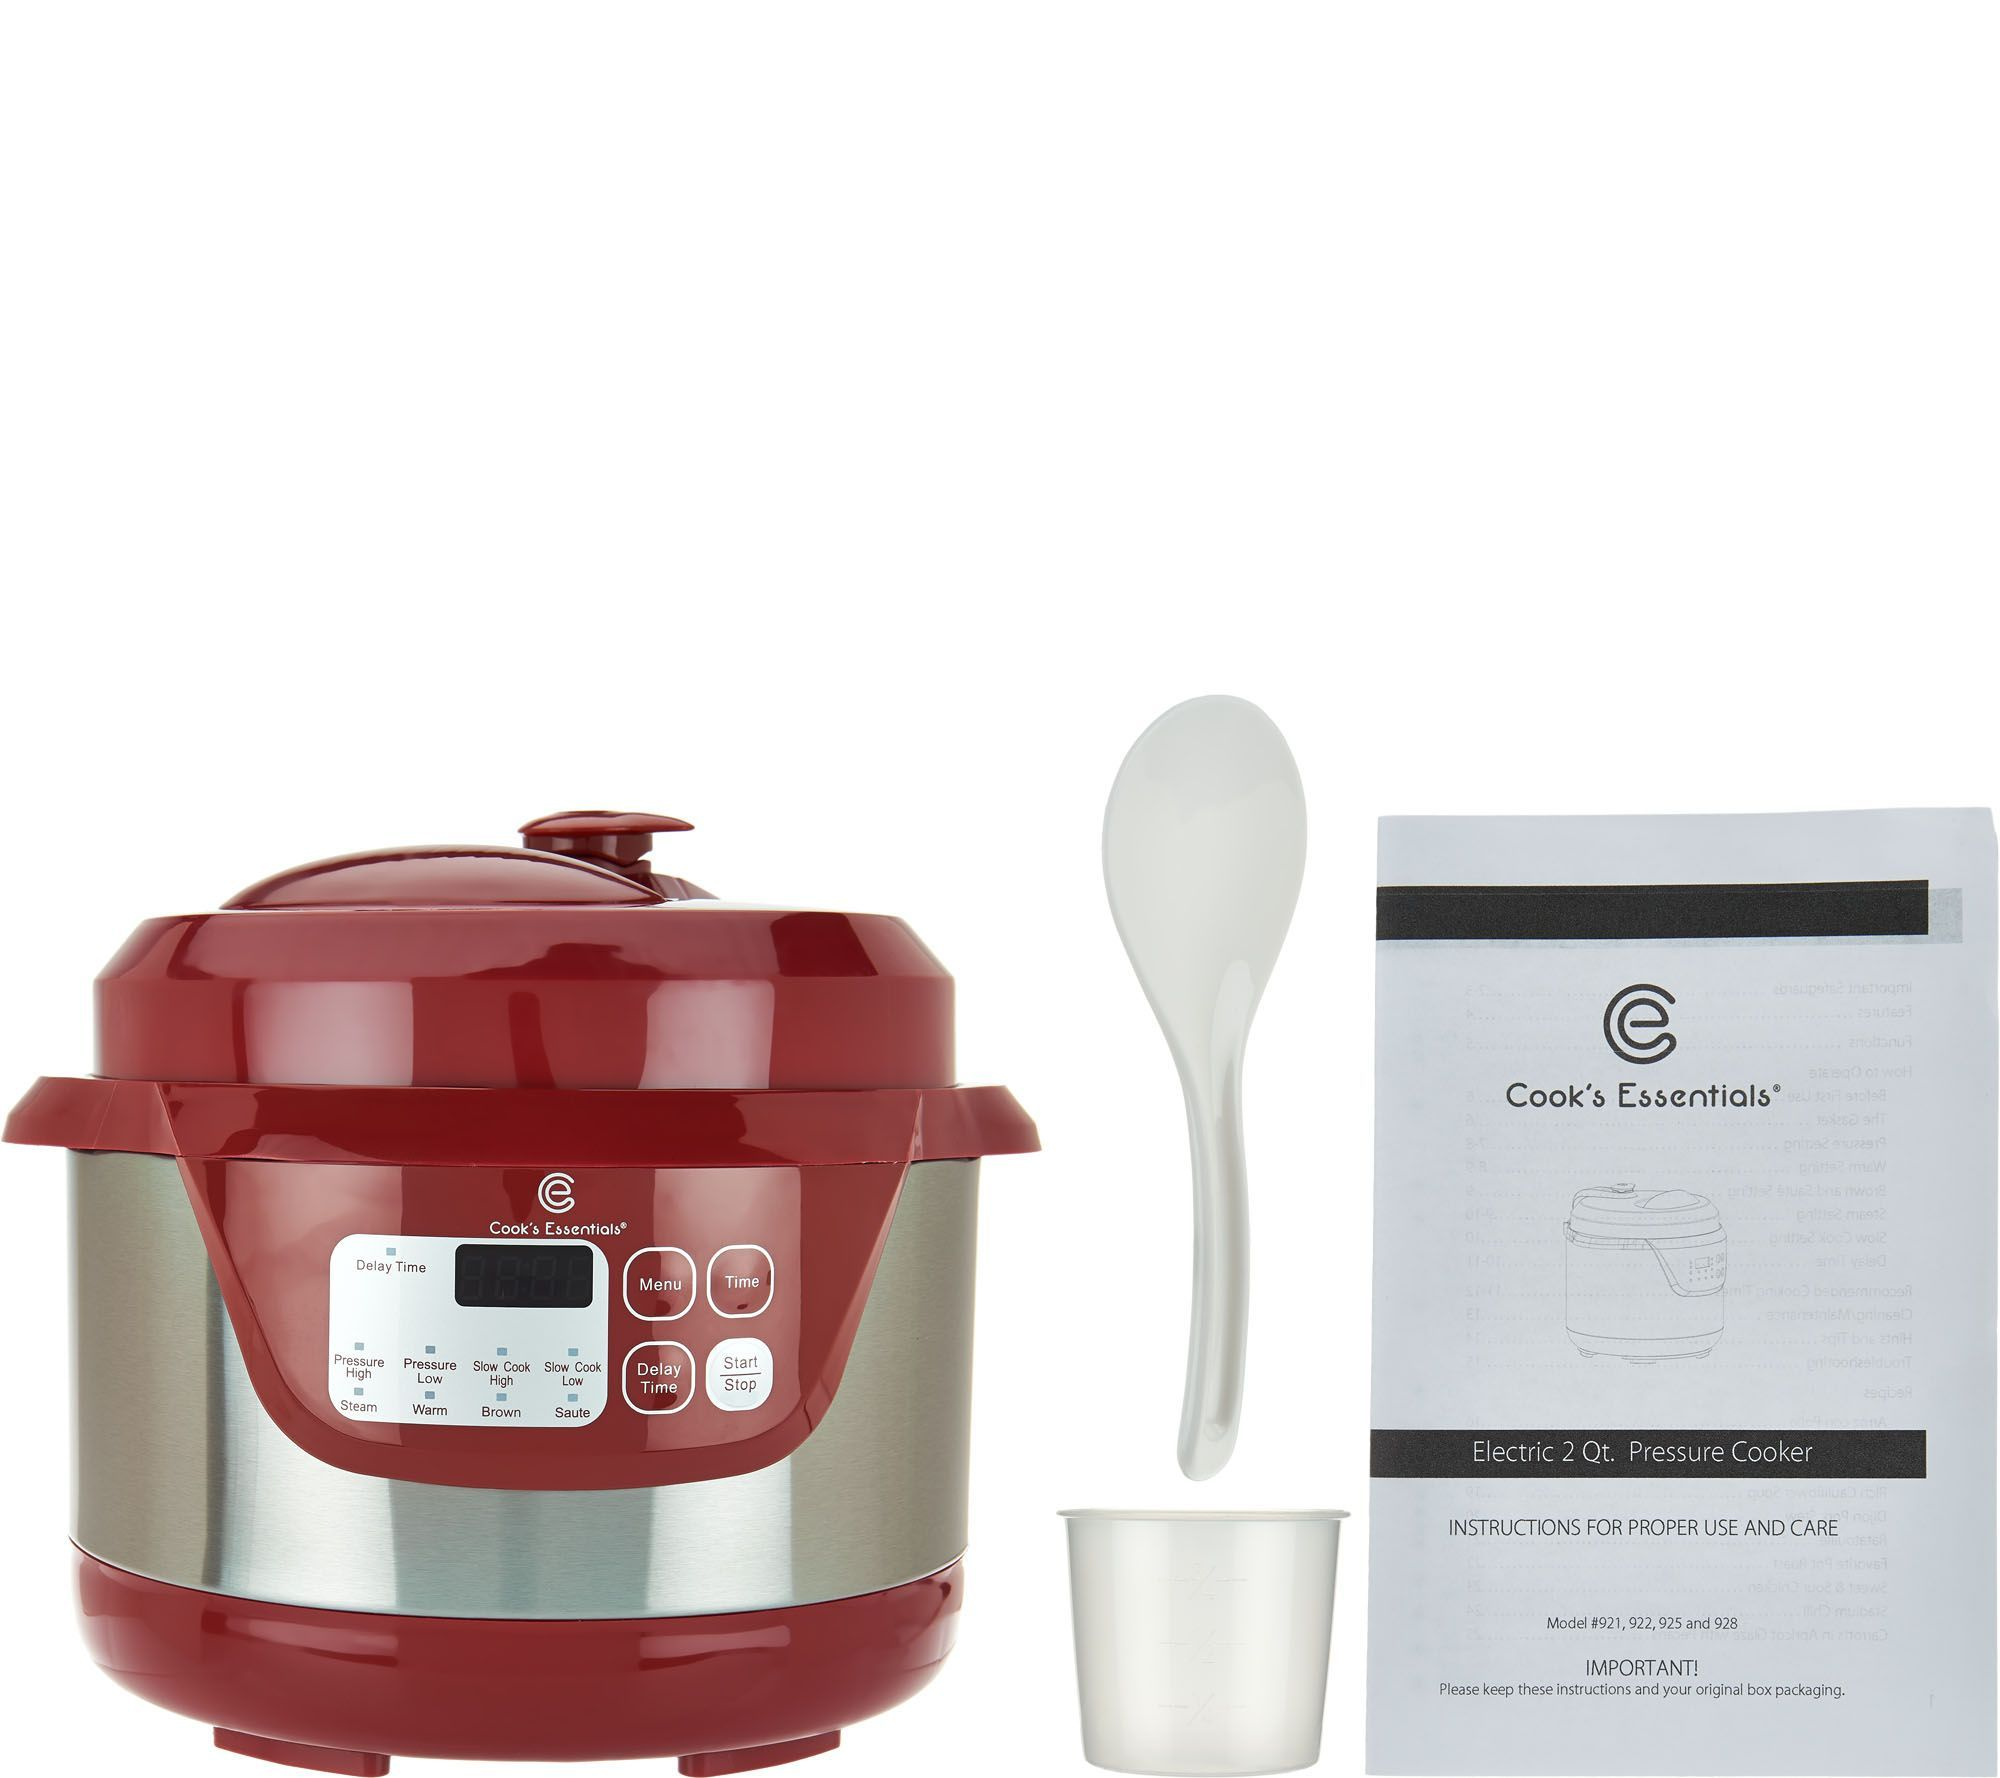 qvc kitchen appliances clearance items qt cooks essentials pressure cooker from qvc presentations in